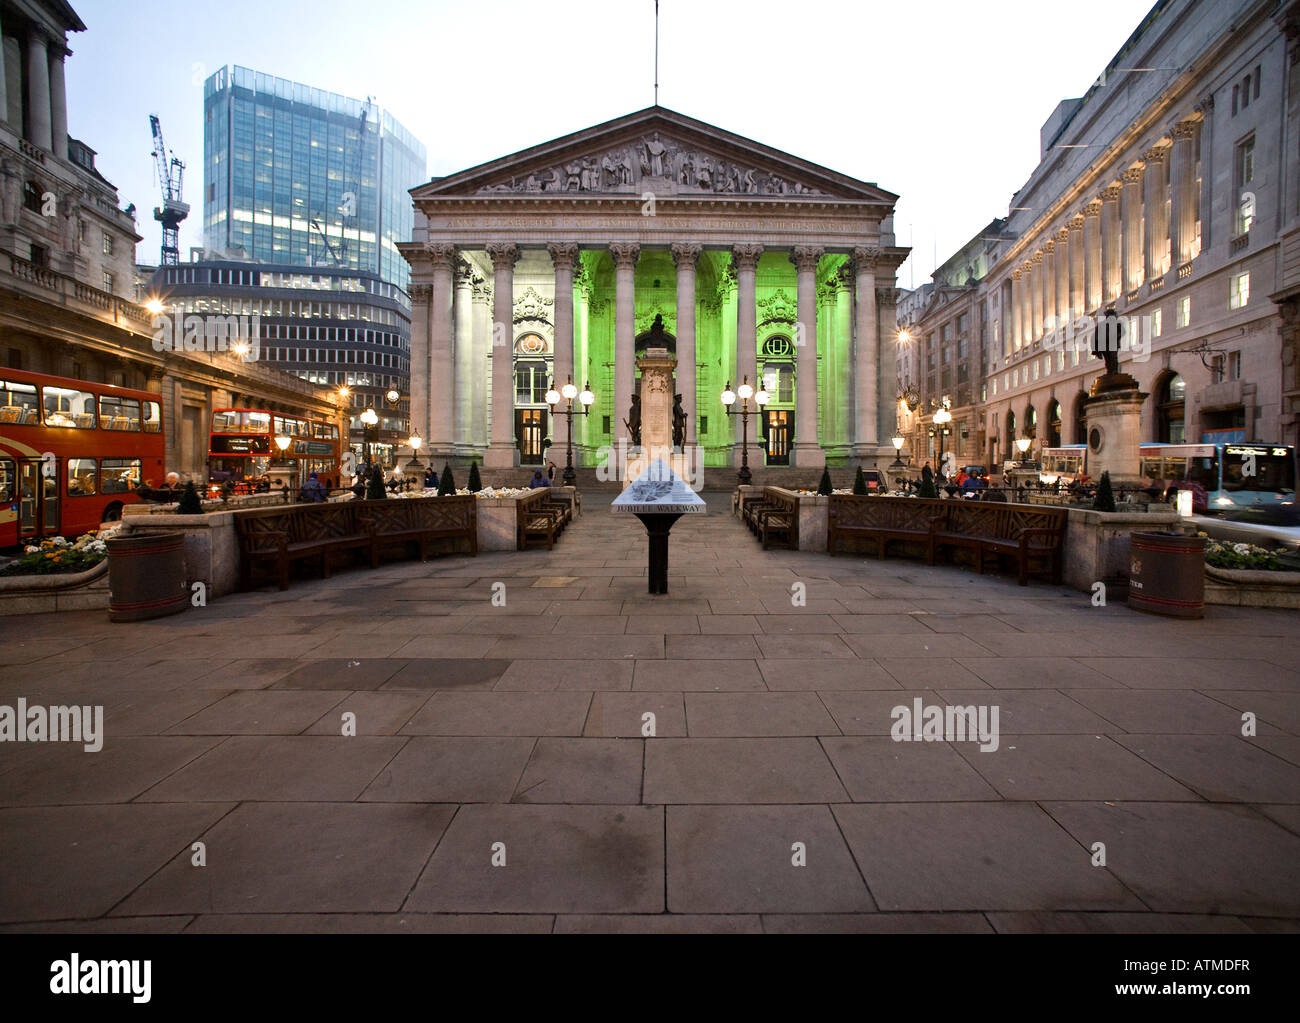 The Royal Exchange, City of London - Stock Image